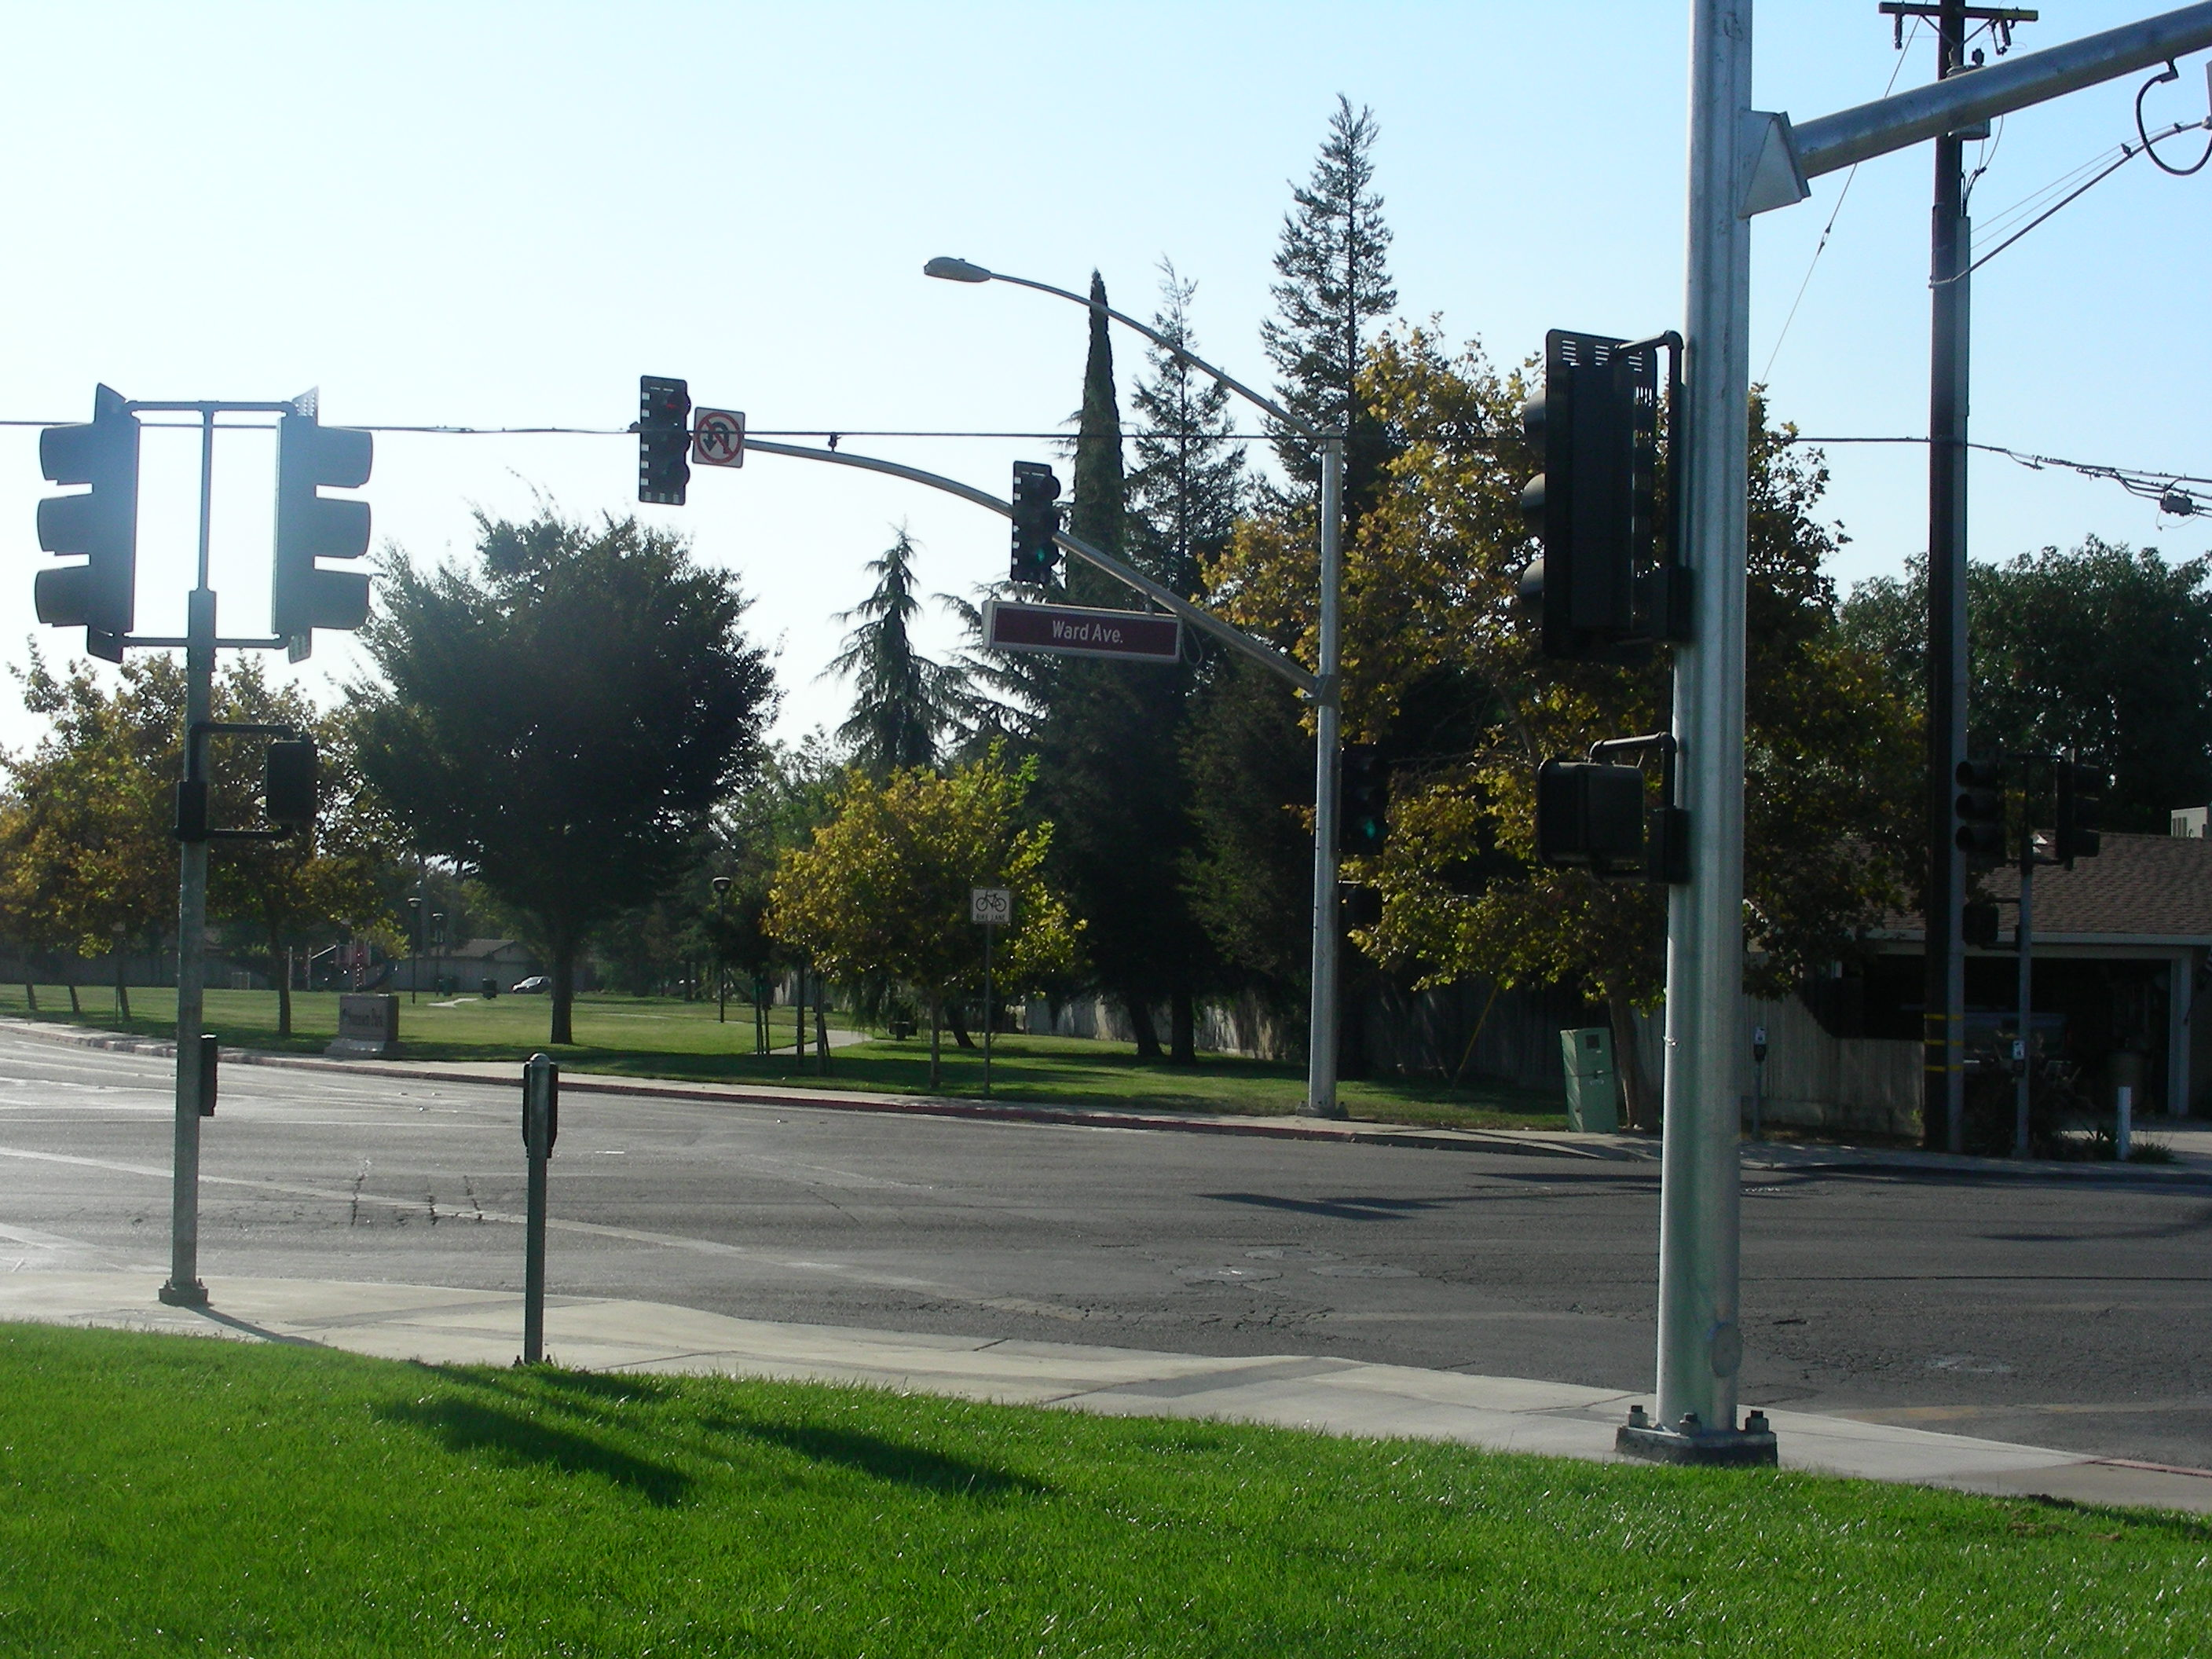 Intersection with Stop Lights